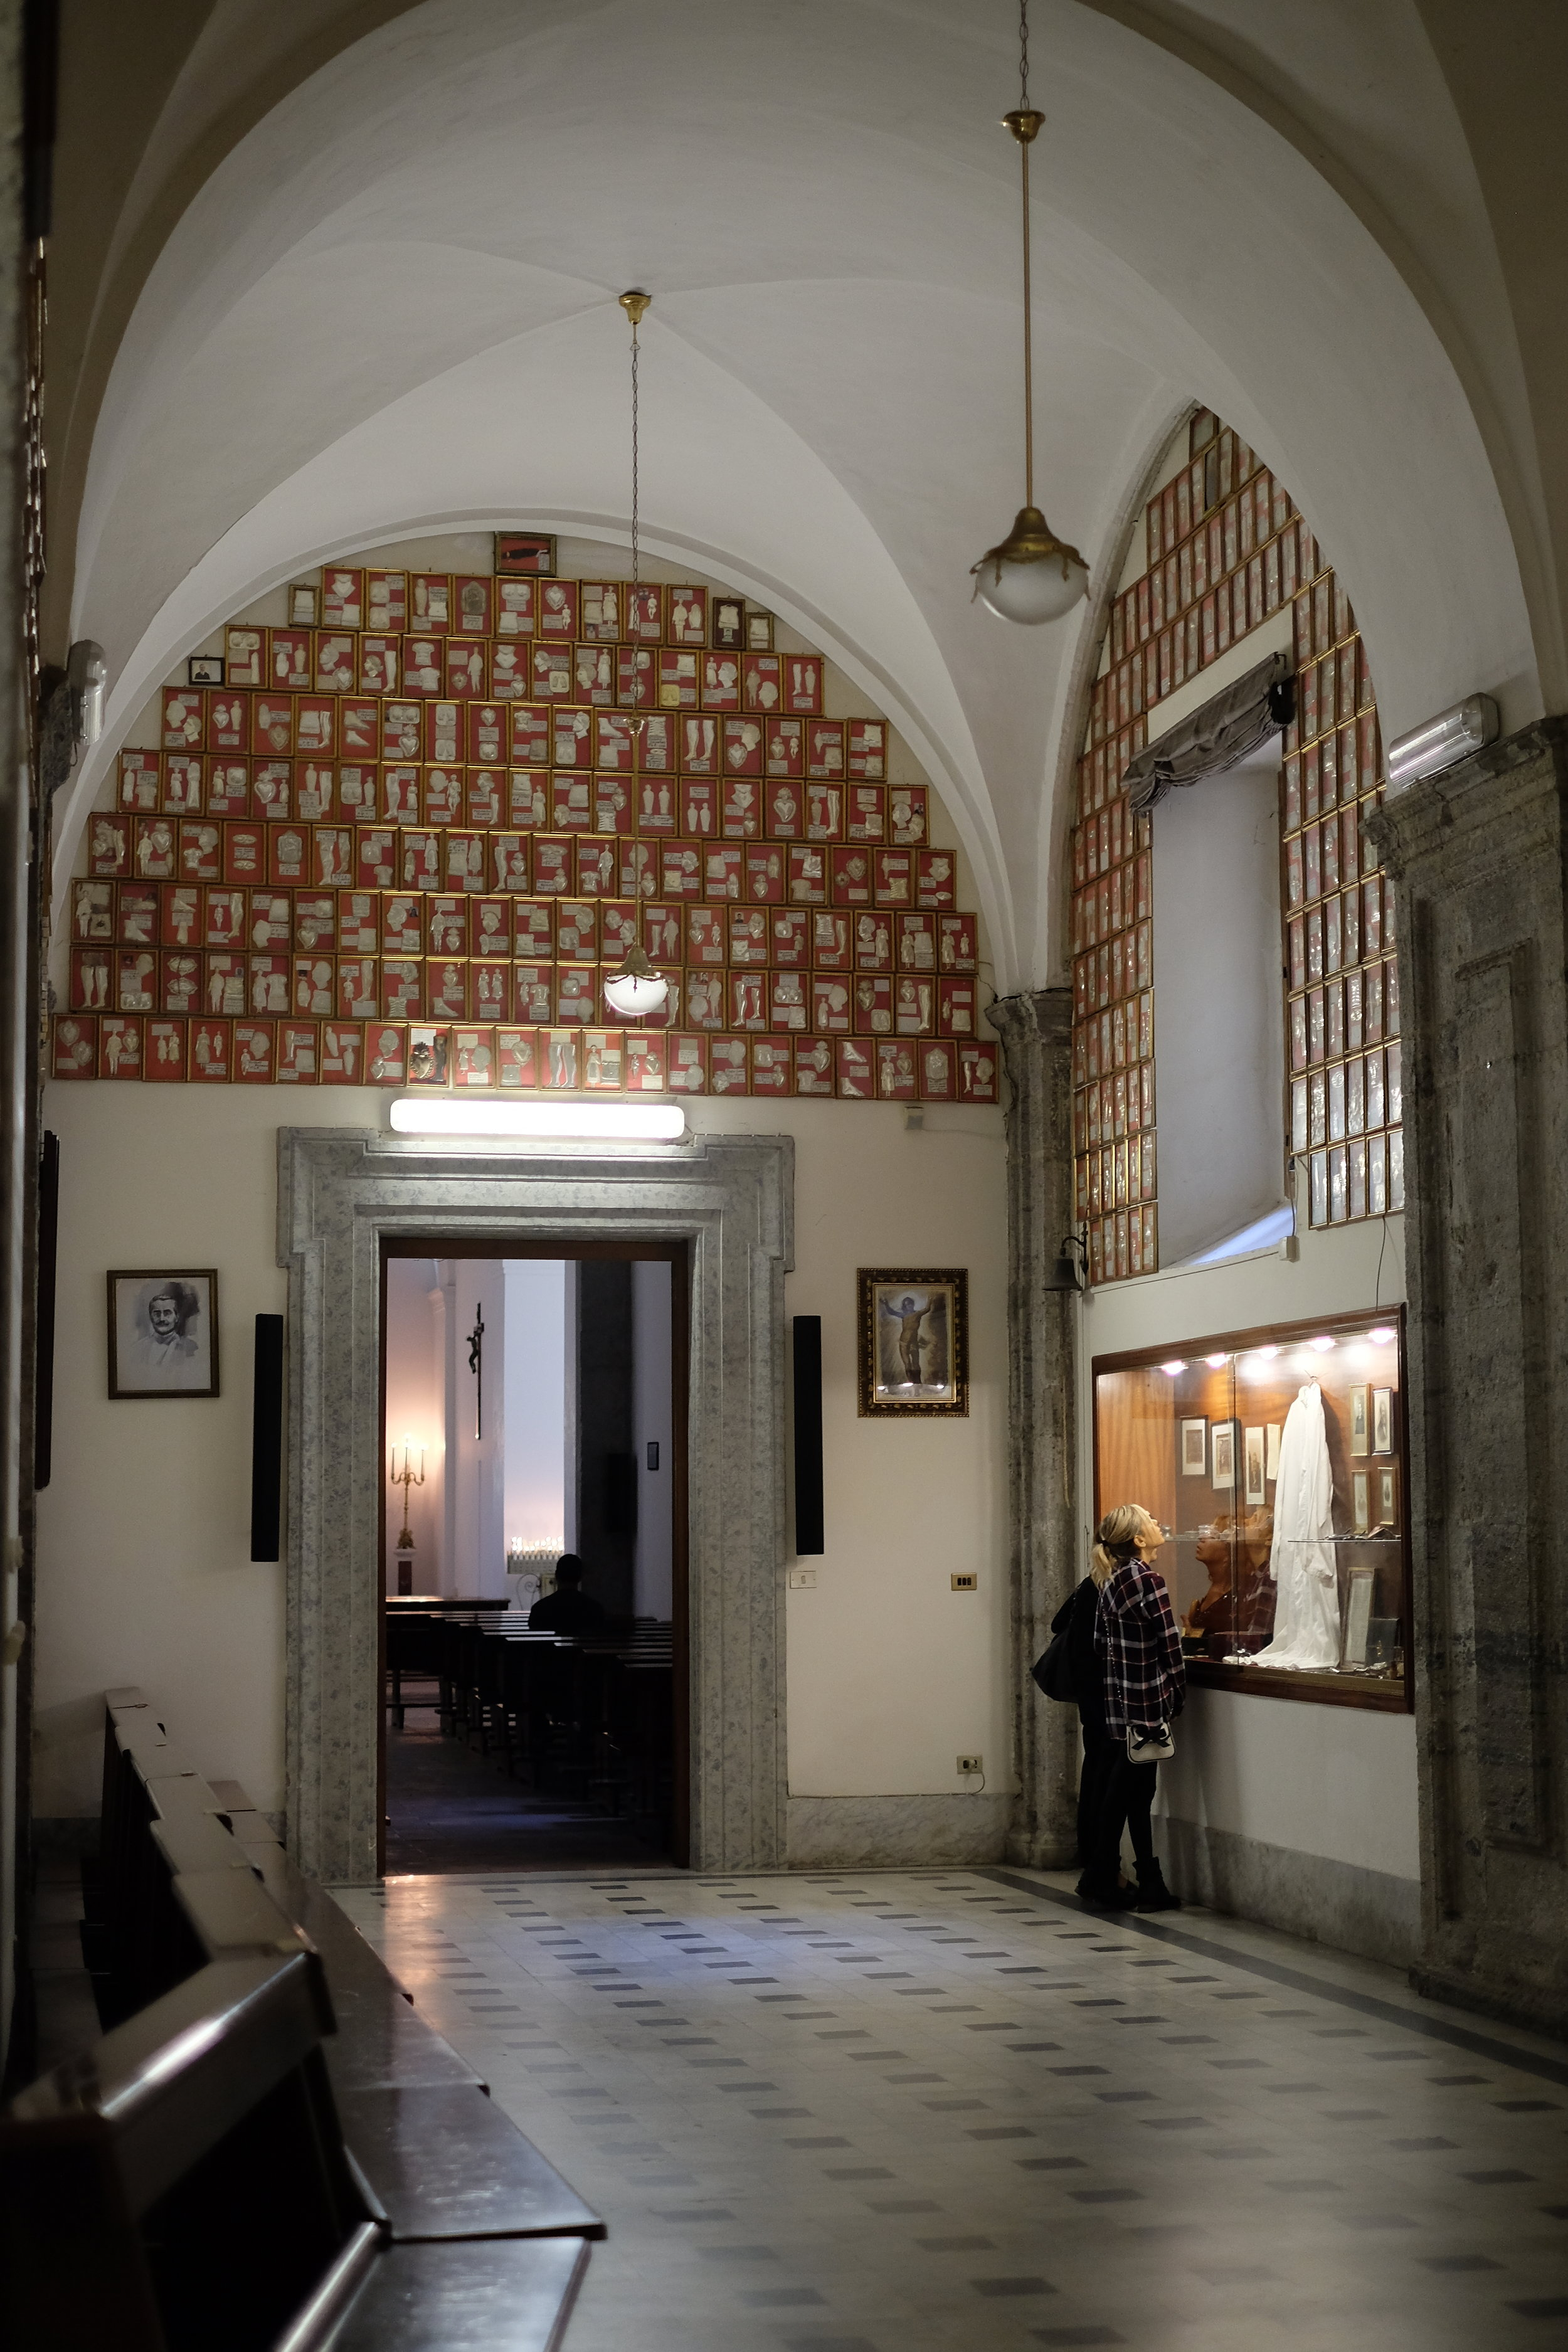 The collection of ex-voto in Gesú Nuovo Church.